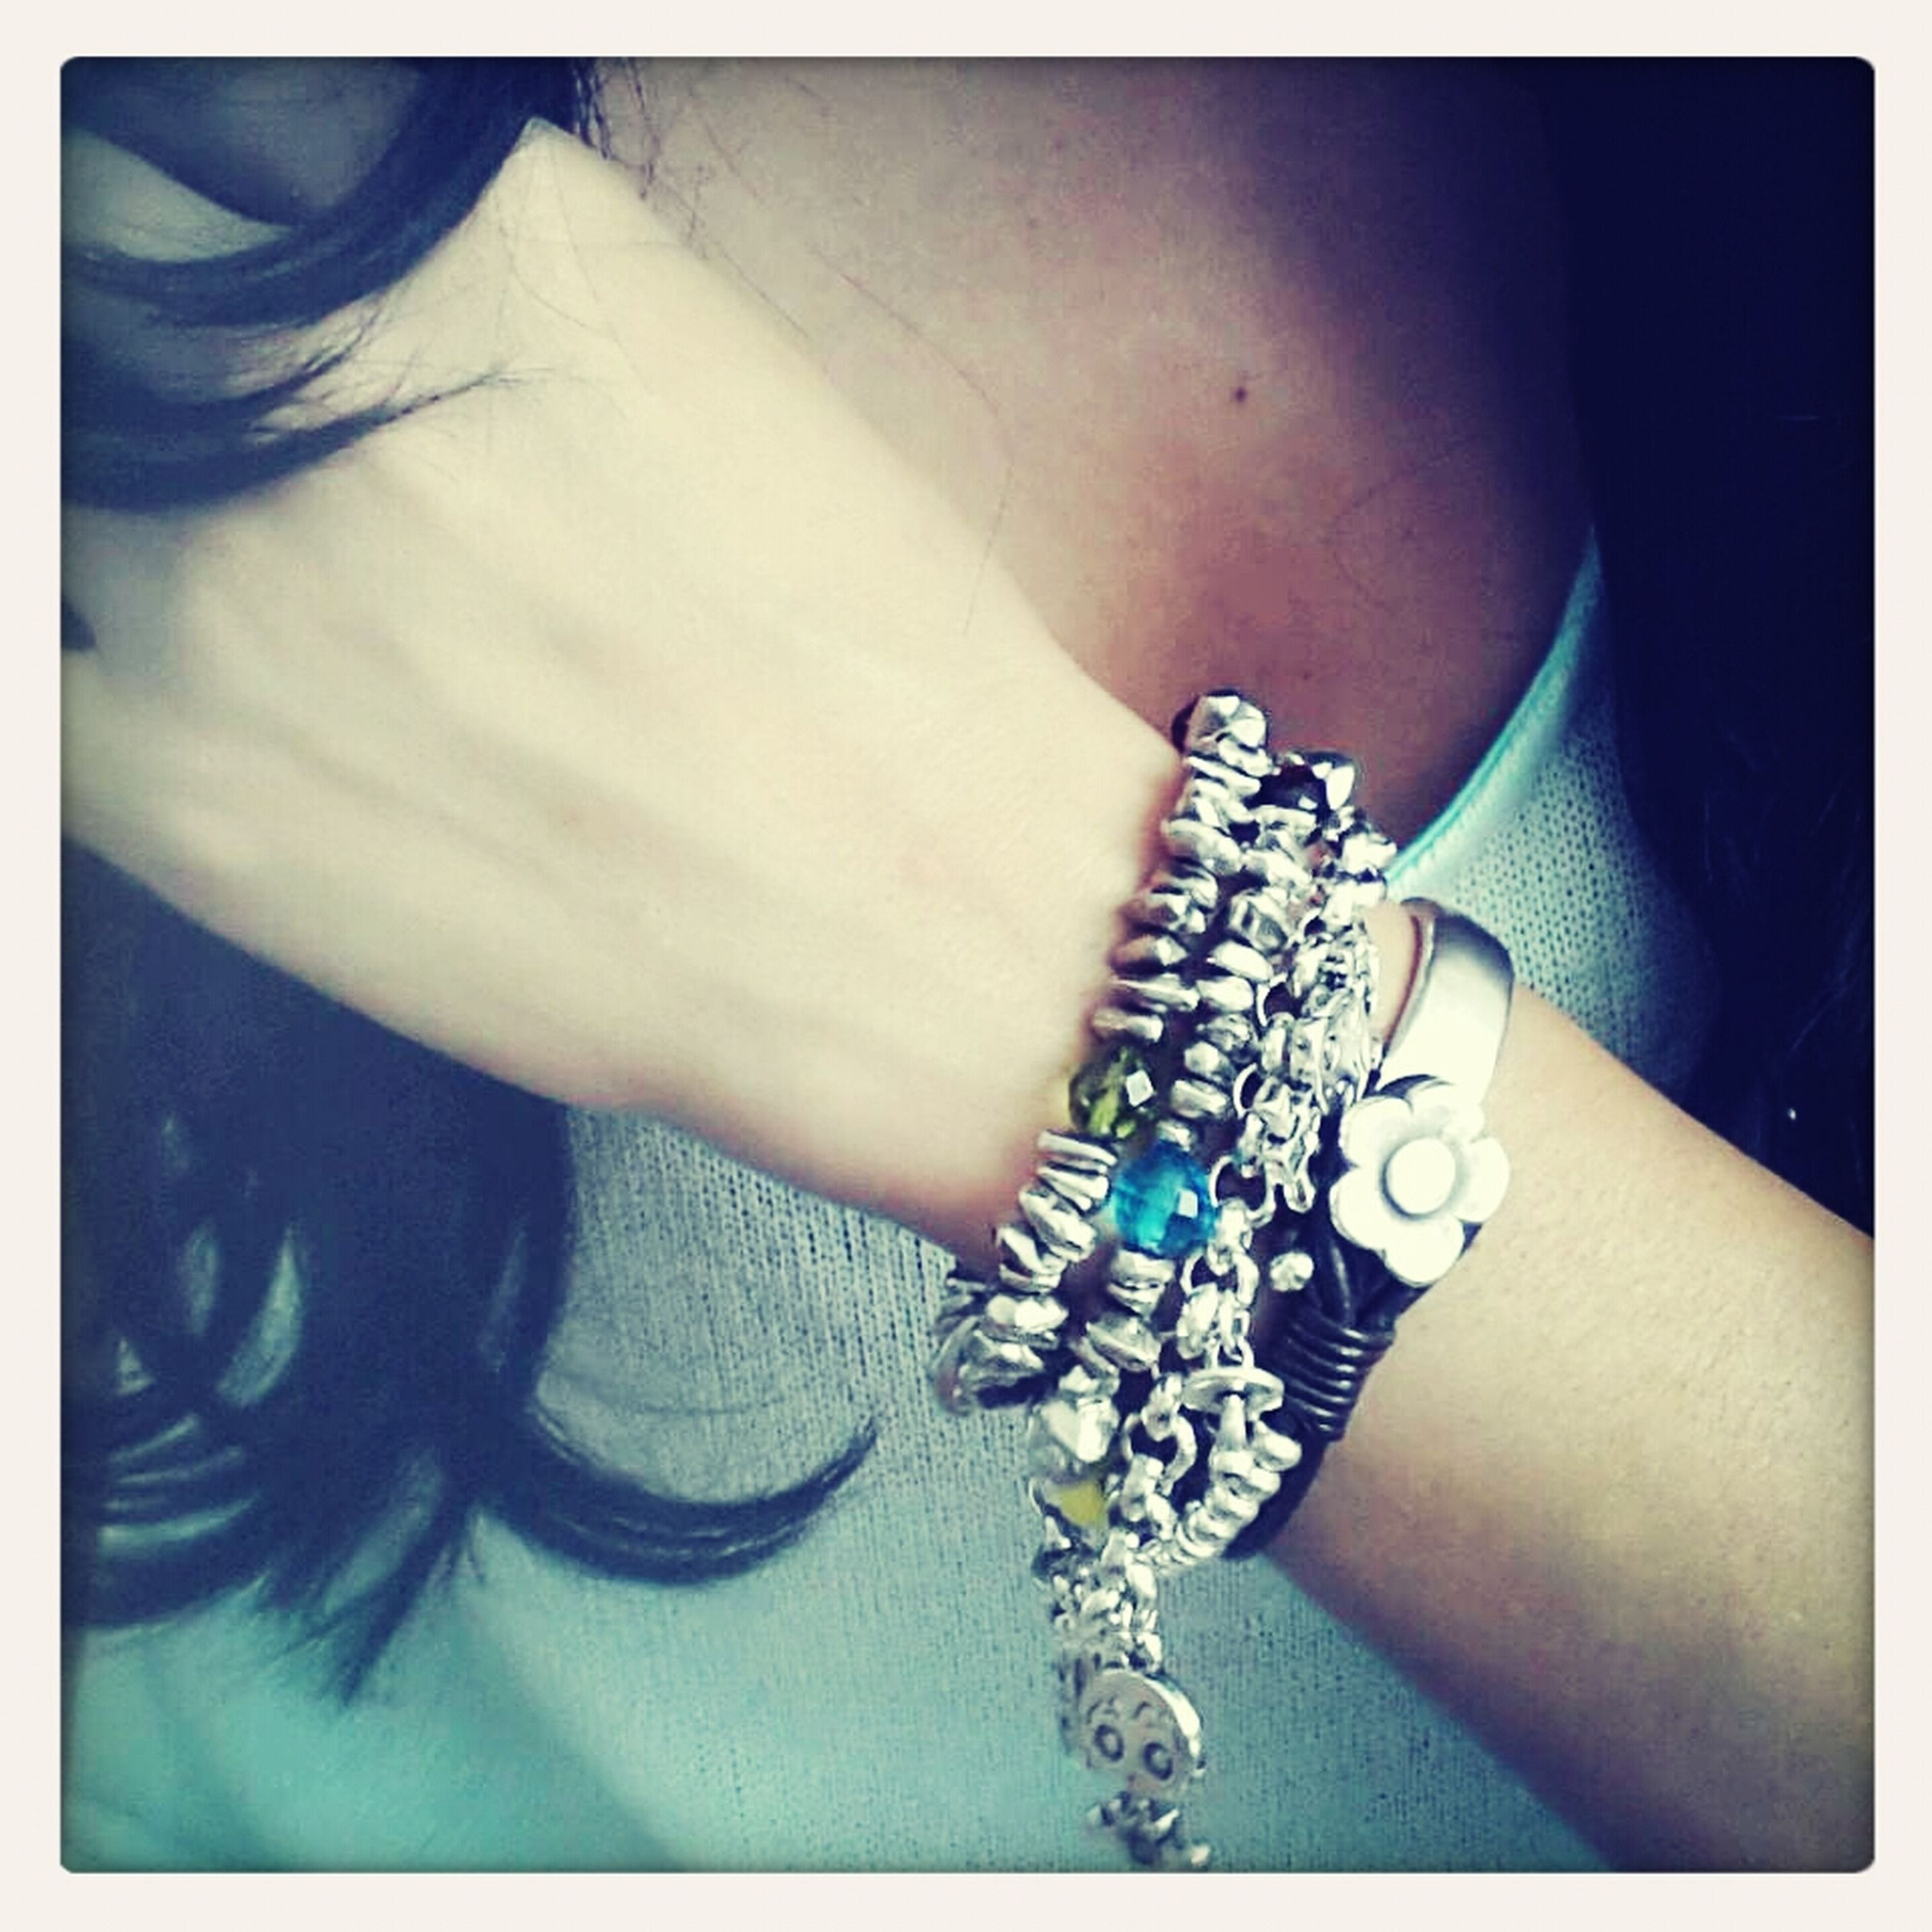 indoors, person, lifestyles, part of, leisure activity, fashion, close-up, holding, transfer print, high angle view, auto post production filter, jewelry, human finger, unrecognizable person, bracelet, cropped